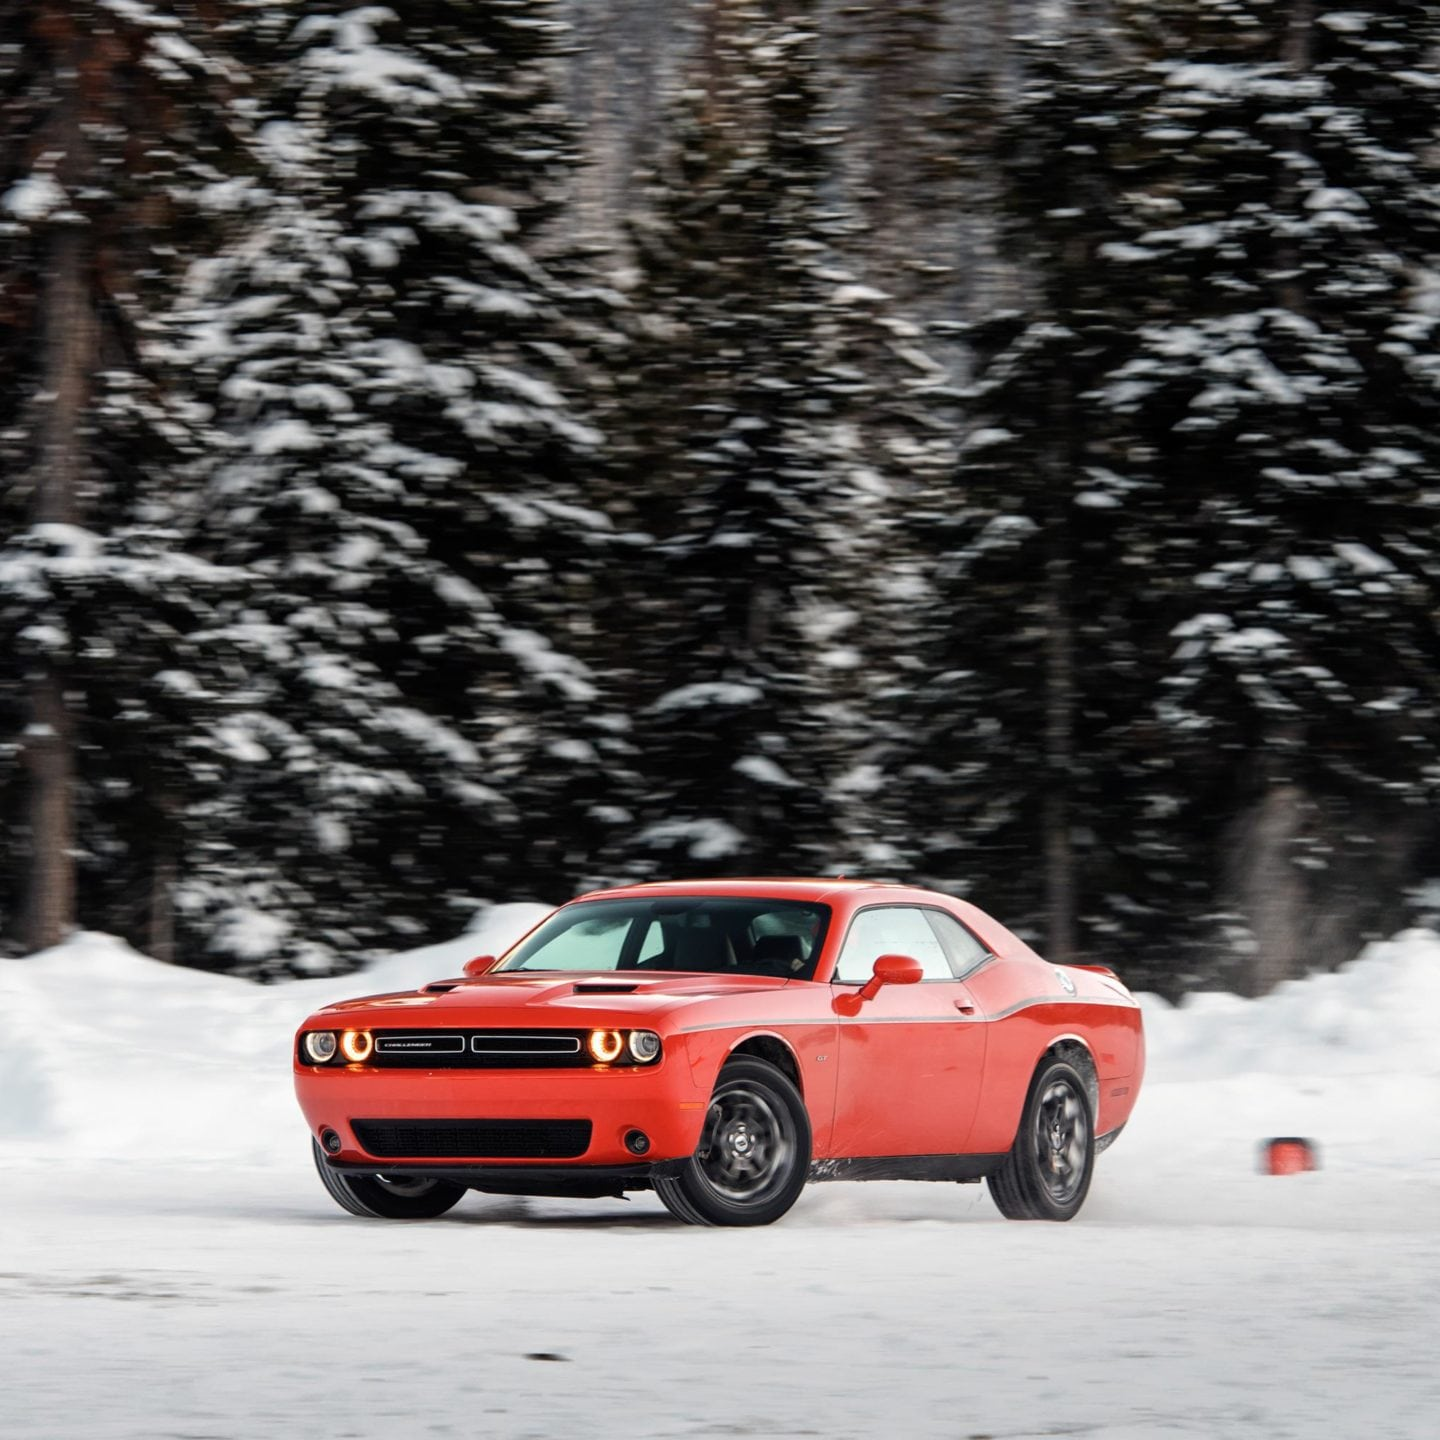 2018 Dodge Challenger GT, Performance on Ice and Everyday